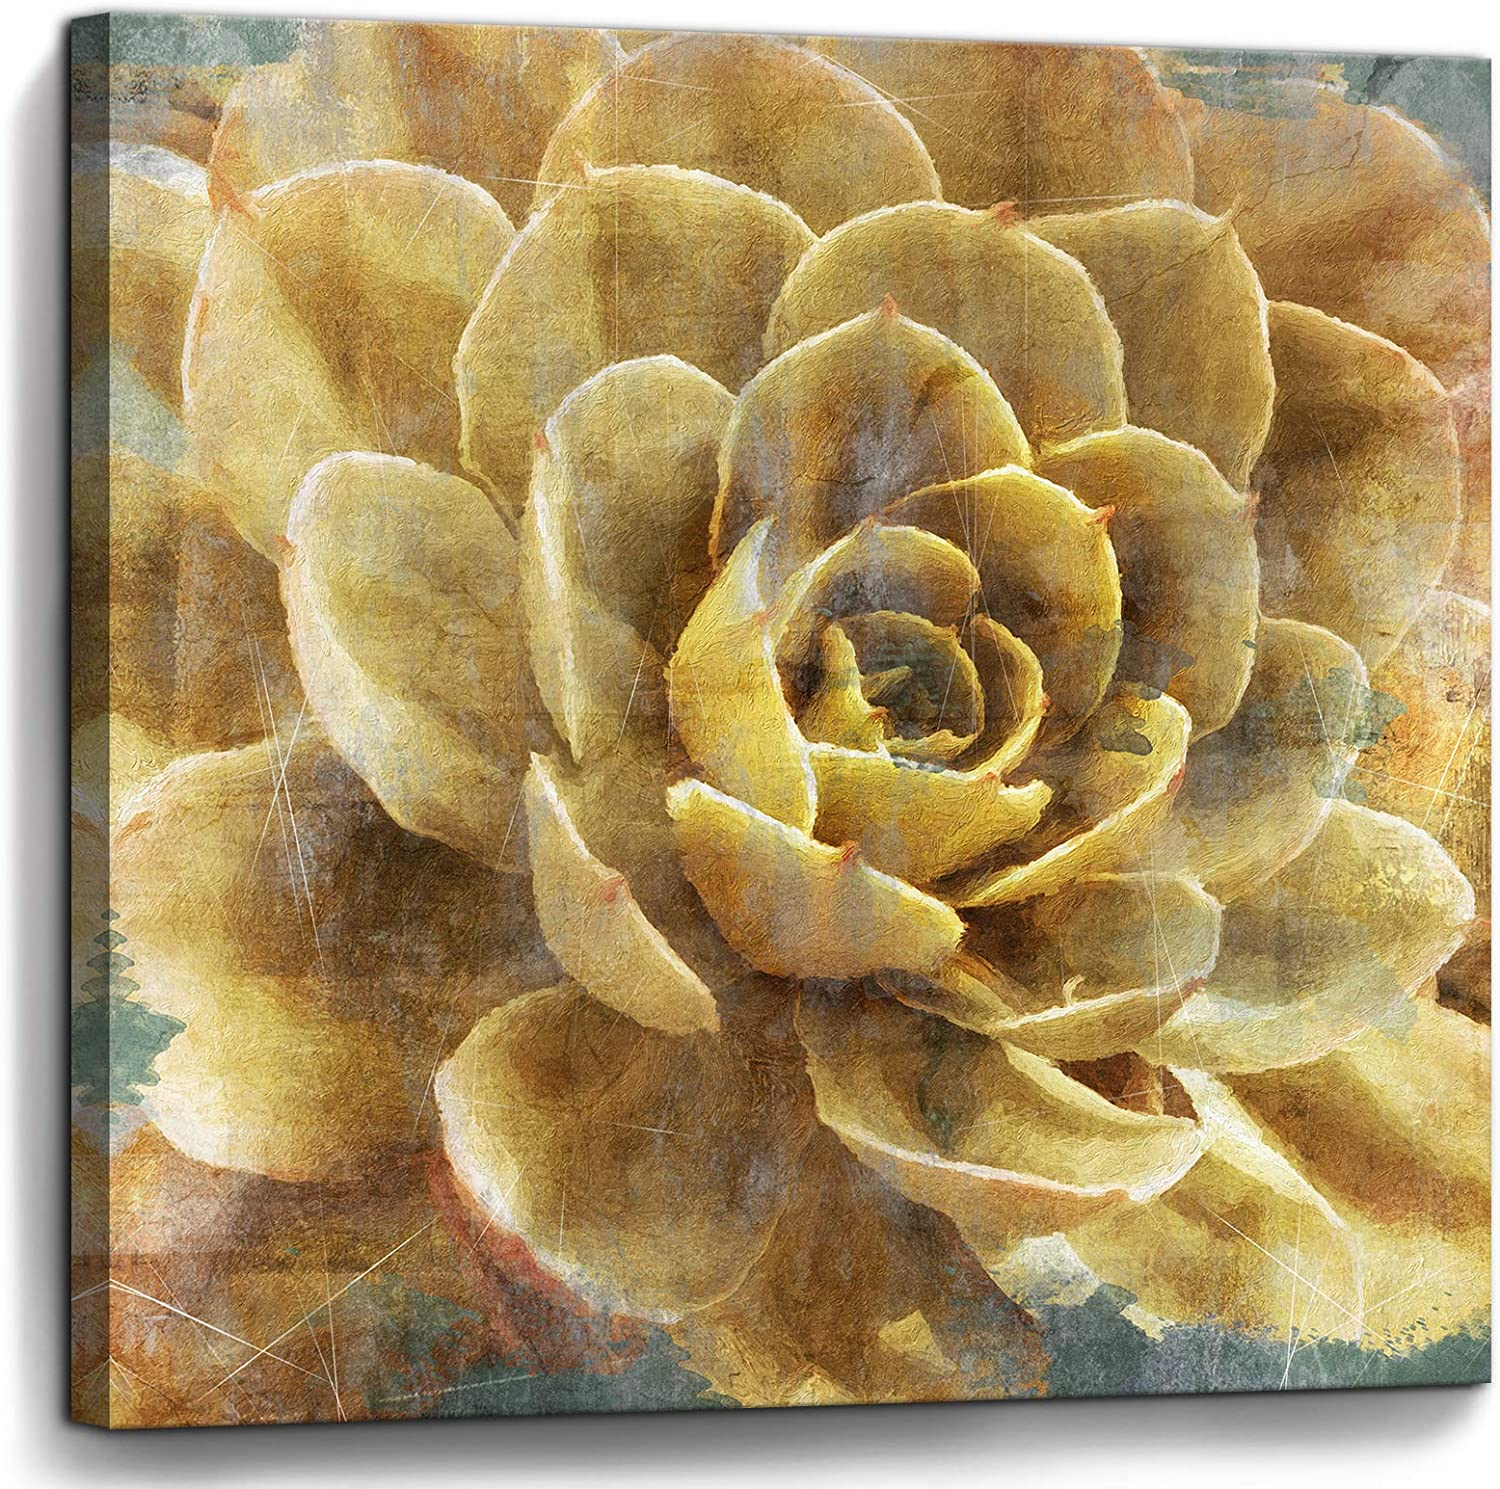 Bathroom Wall Art Vintage Yellow Flowers Pictures Canvas Artwork Framed Wall Decor for Bedroom Kitchen Office Modern Home Plant Prints Paintings Decorations Size 14x14 inches Ready to Hang